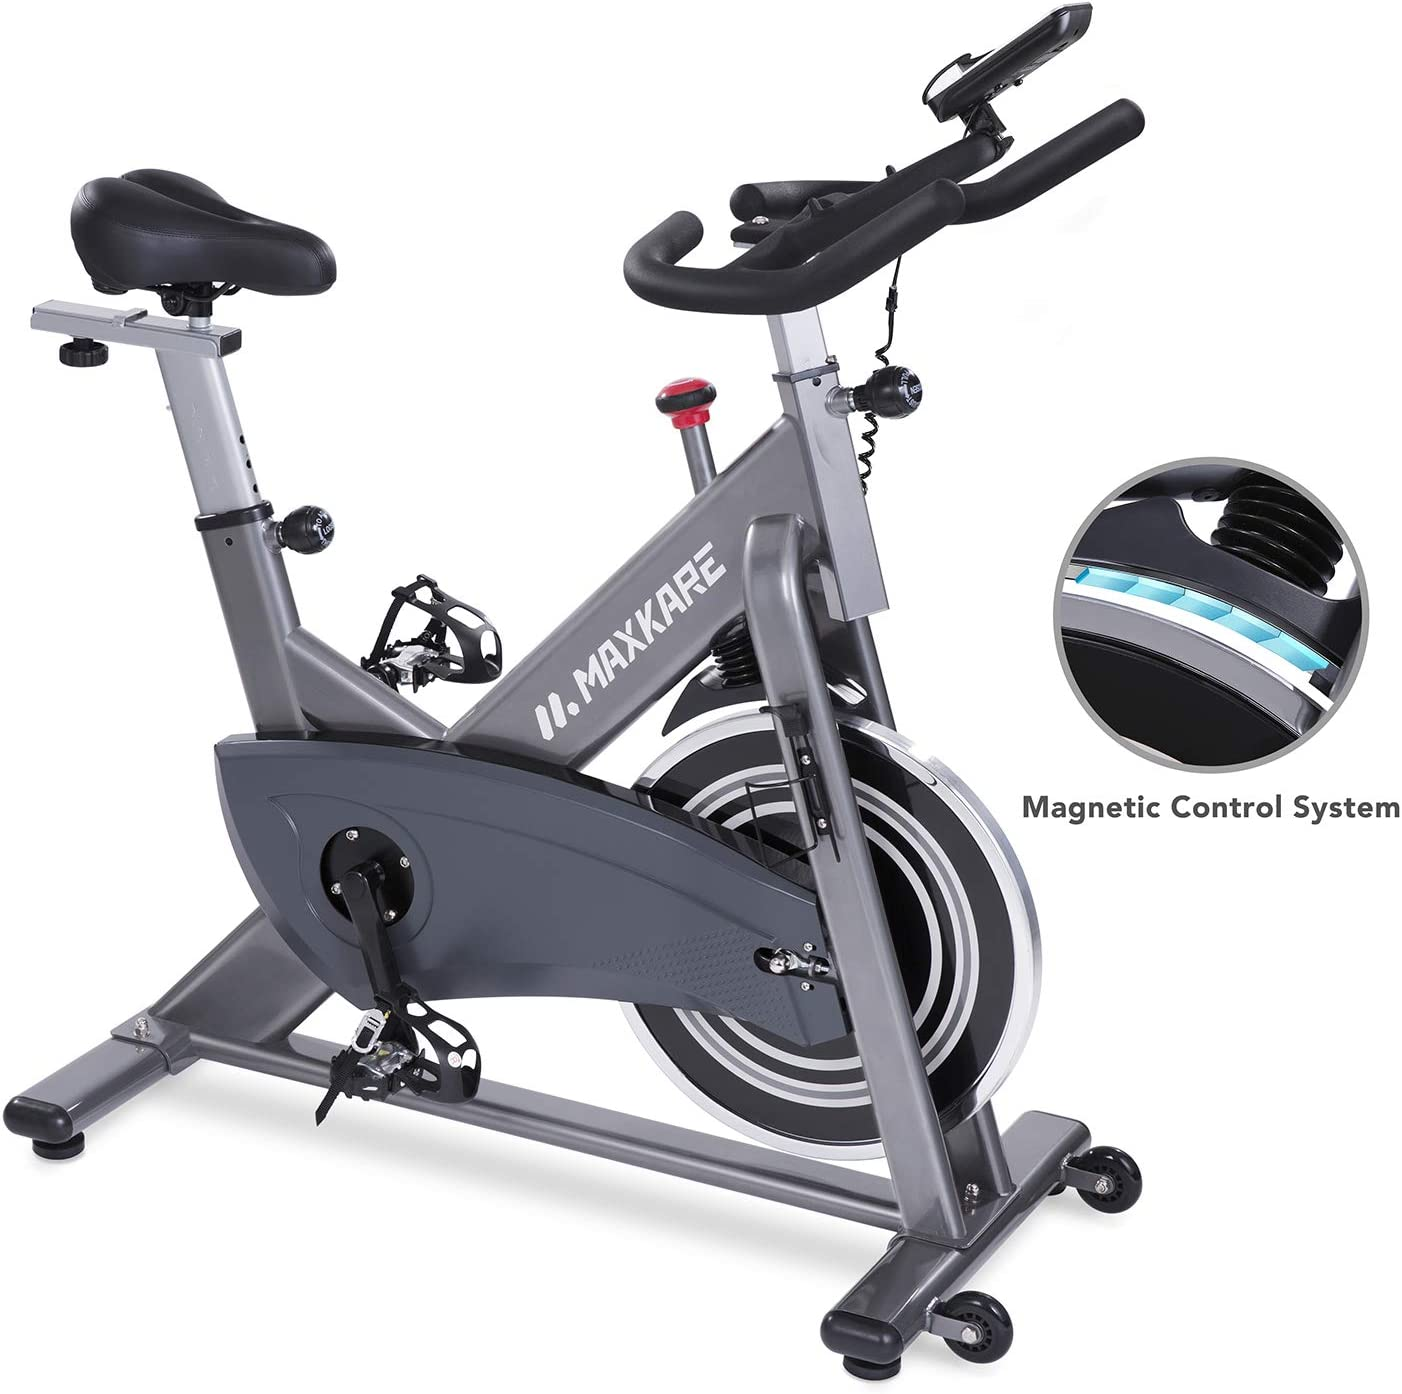 Amazon.com : MaxKare Magnetic Exercise Bike Belt Drive Stationary Indoor Cycling Bike with High Weight Capacity ...